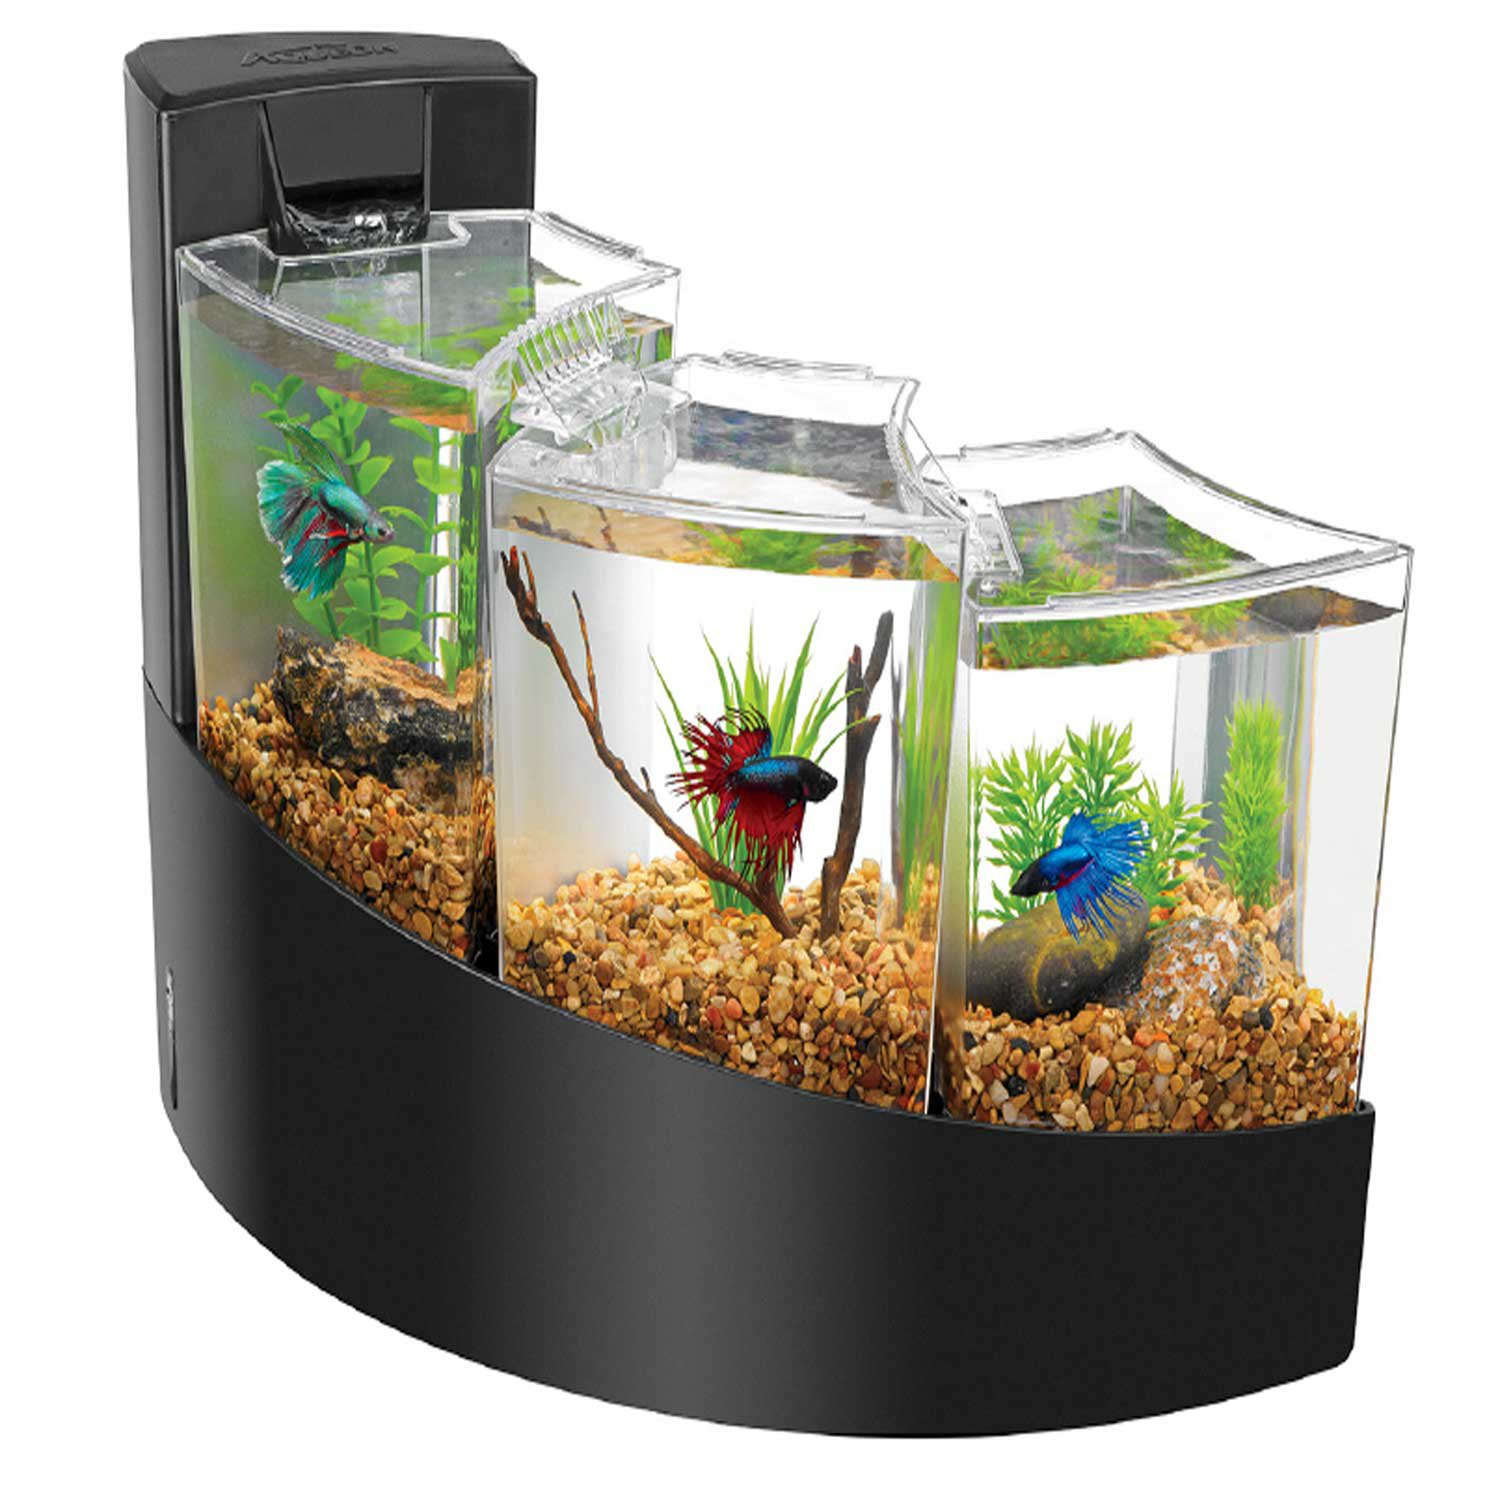 Fish aquarium shops in nagpur wholesalers dealers on for Cool small fish tanks